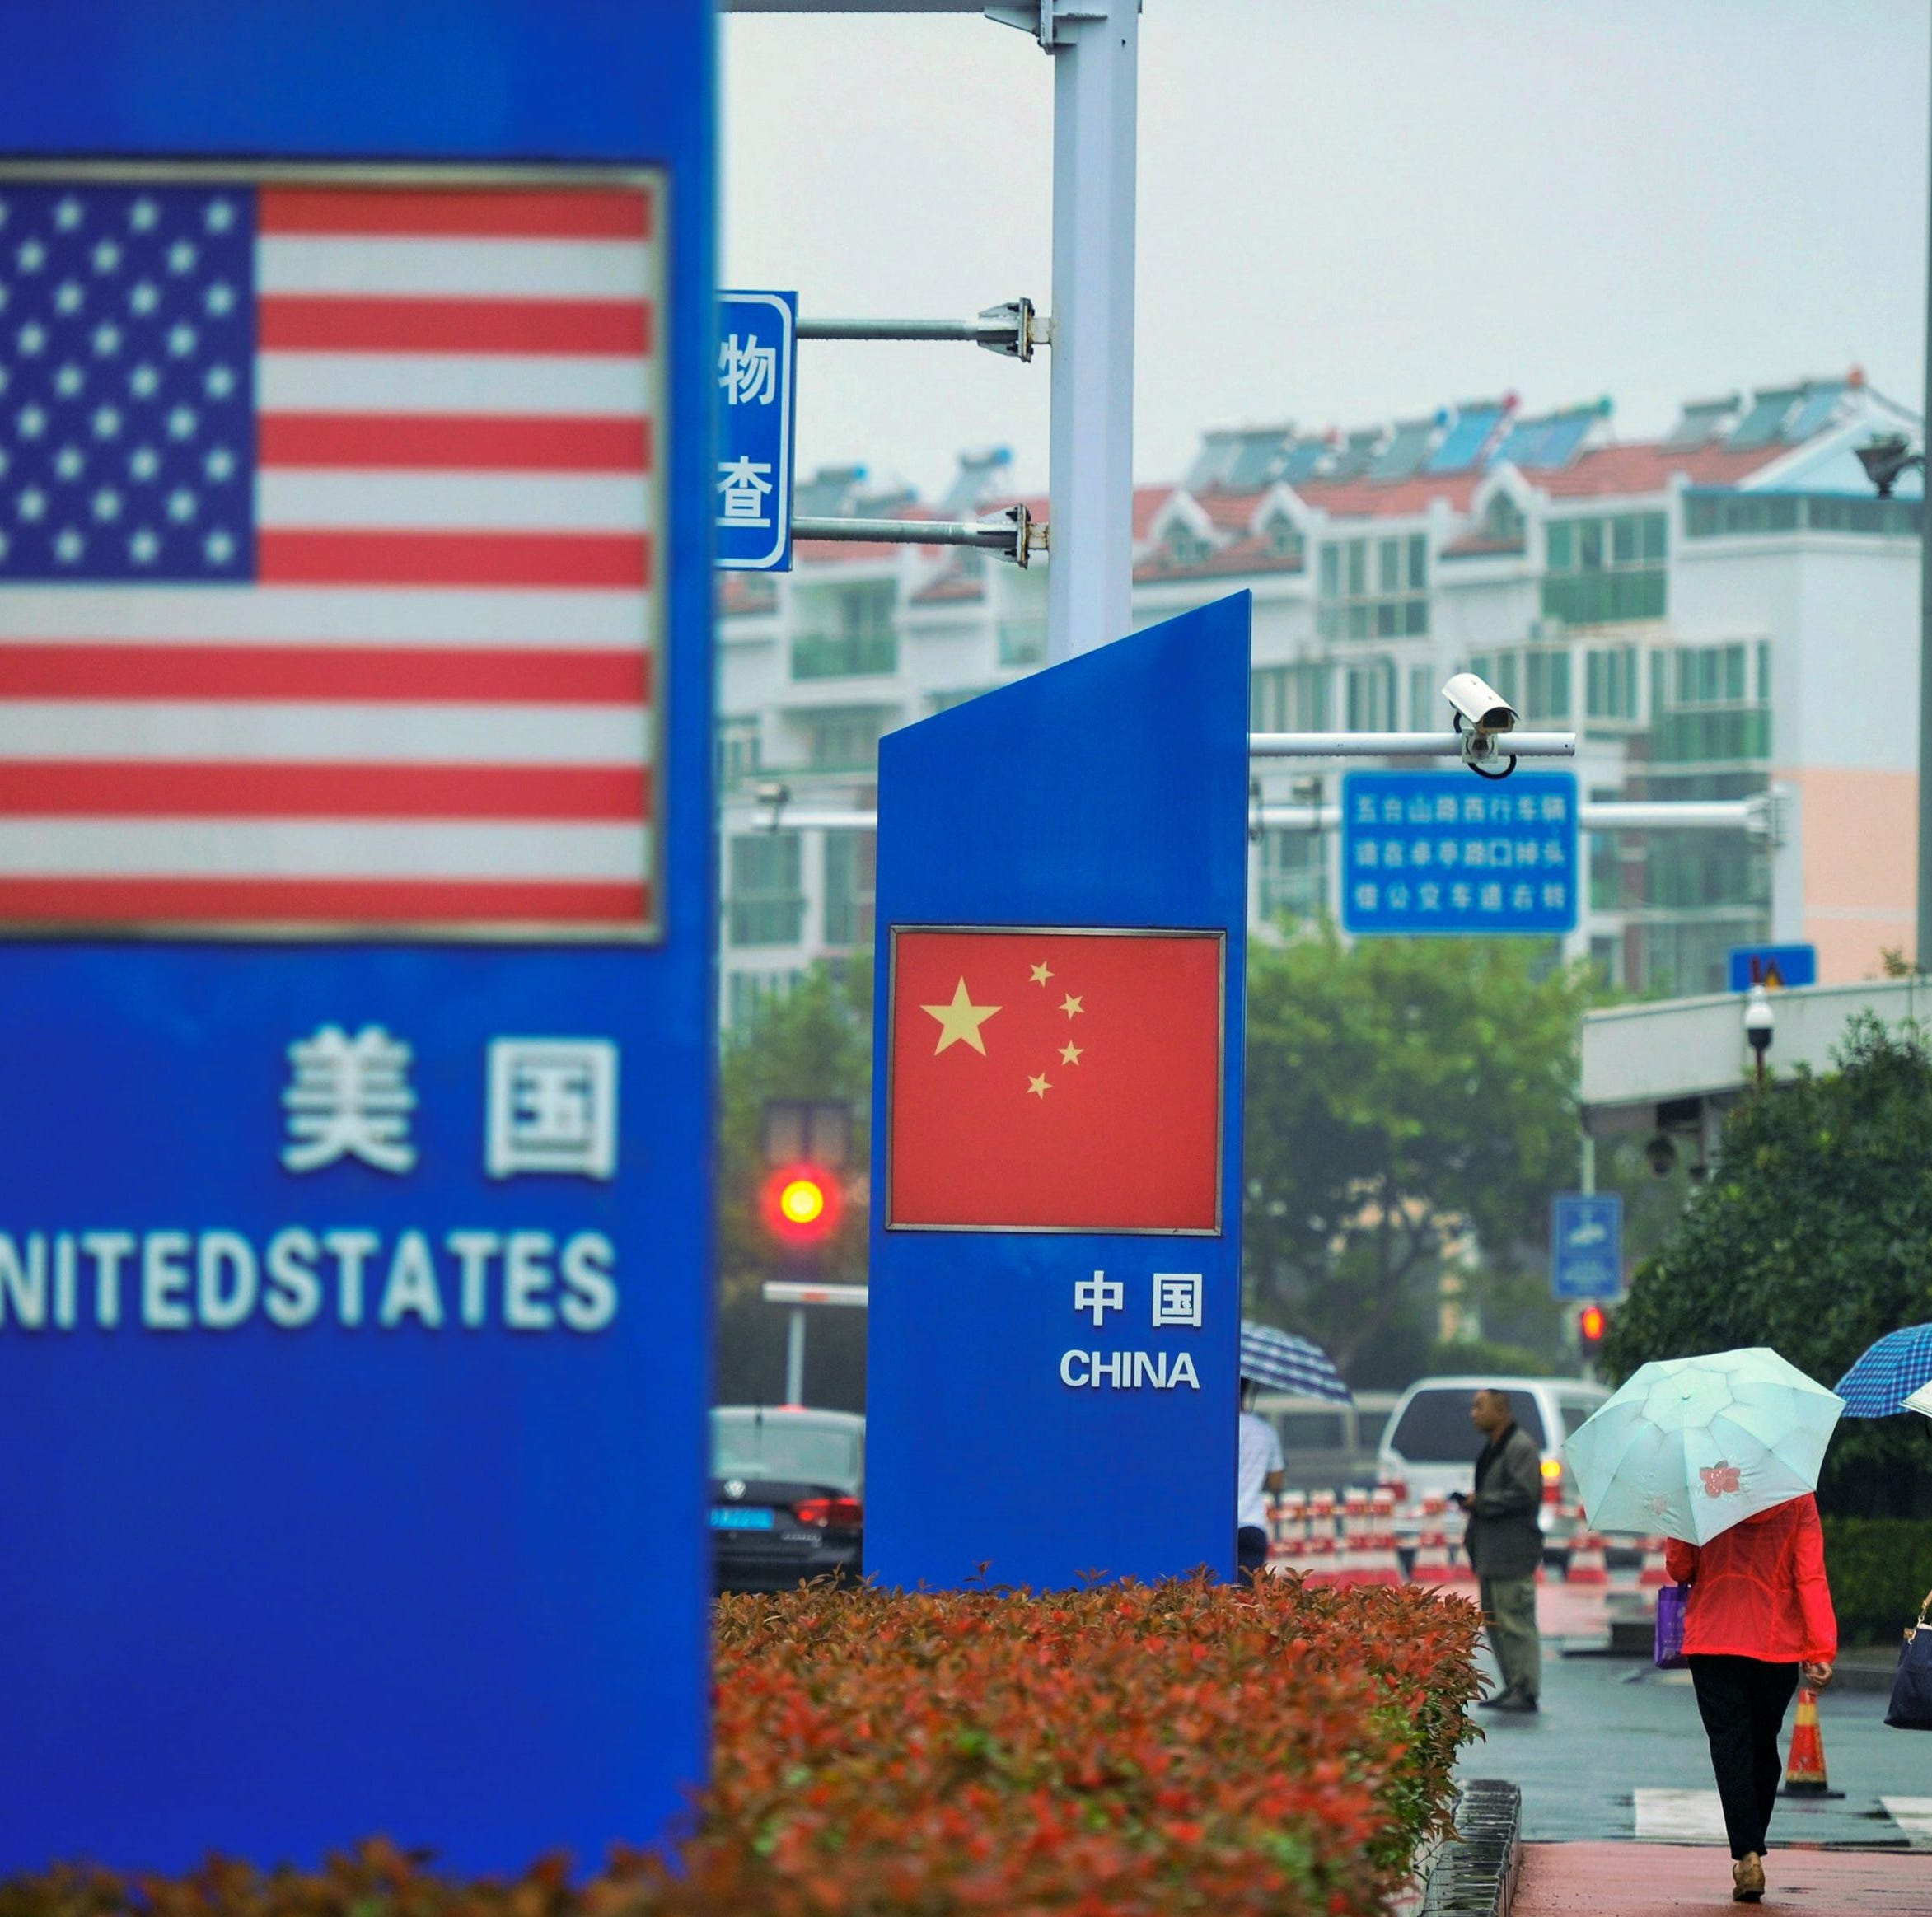 U.S.-China trade is going to shrink. It should.